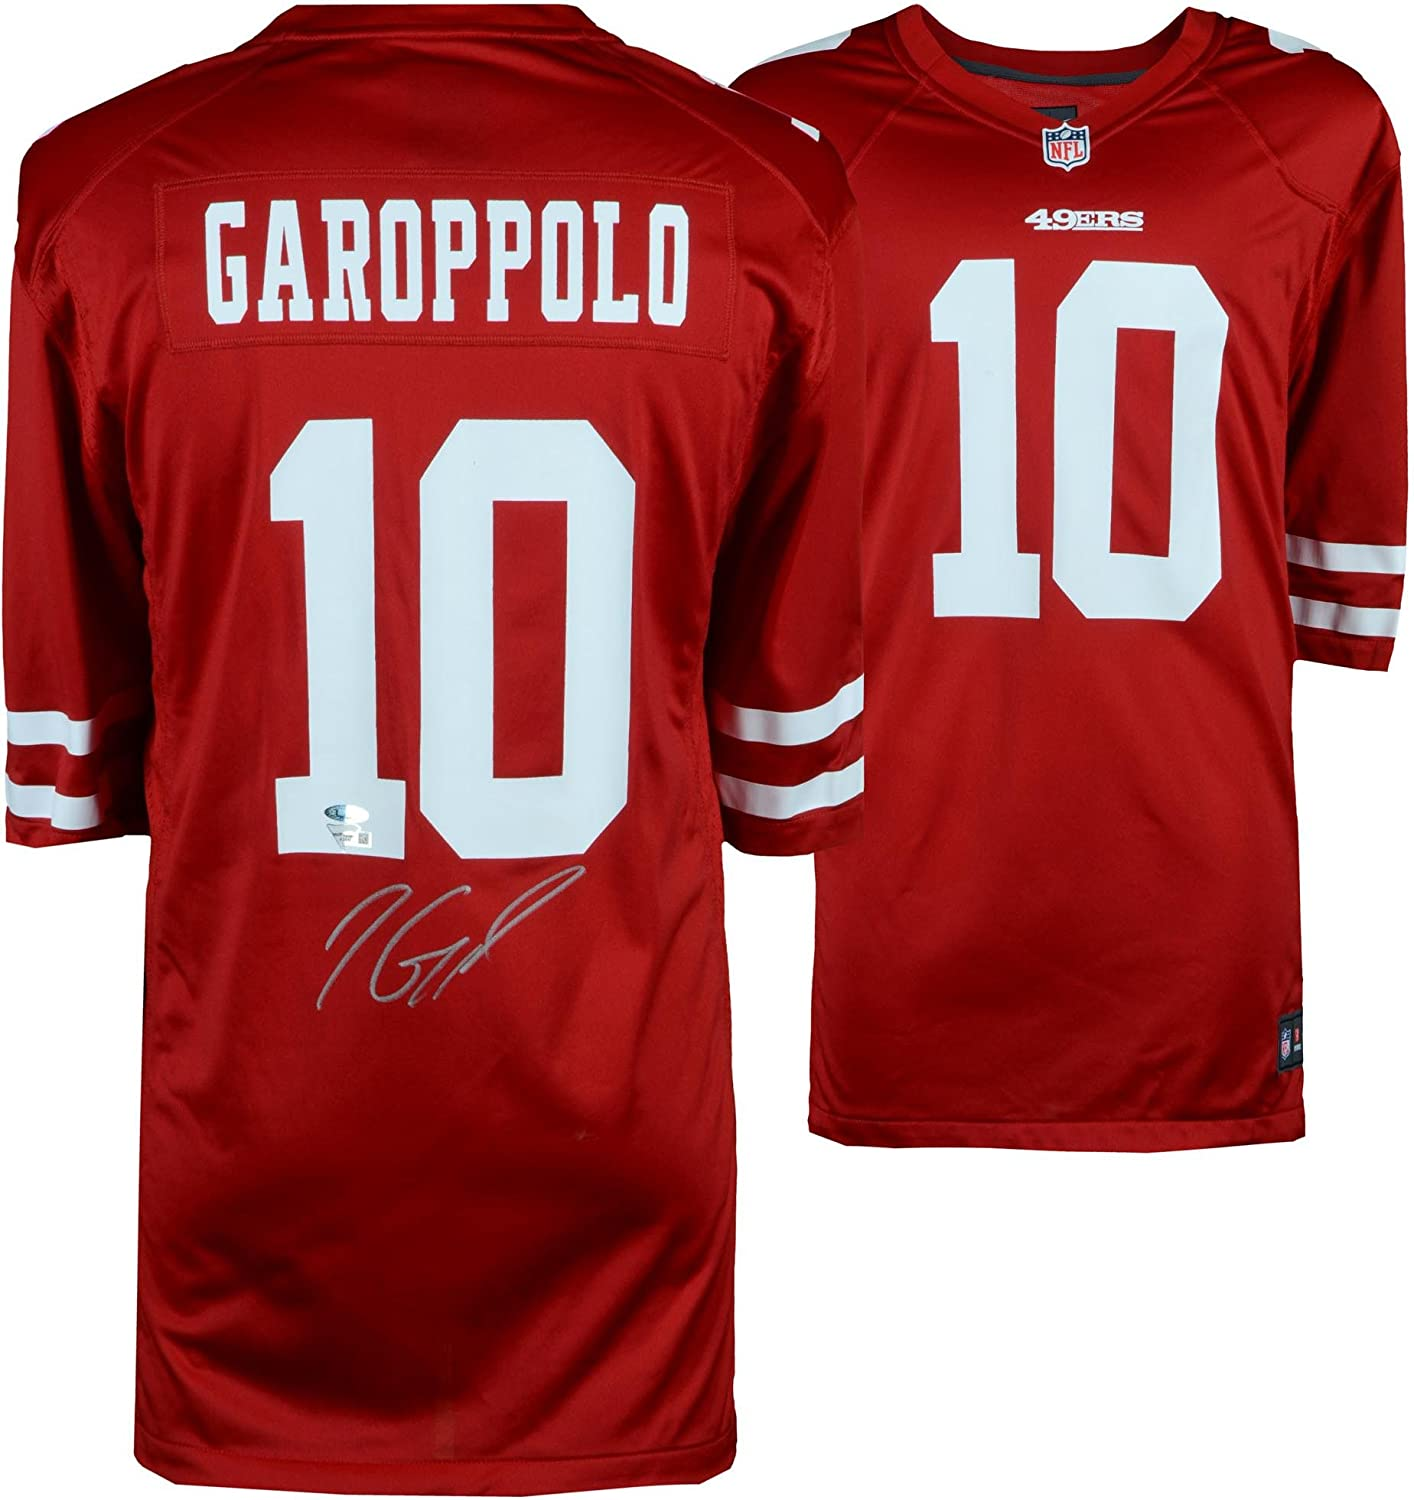 Jimmy Garoppolo San Francisco 49ers Autographed Red Nike Game Jersey - Autographed NFL Jerseys